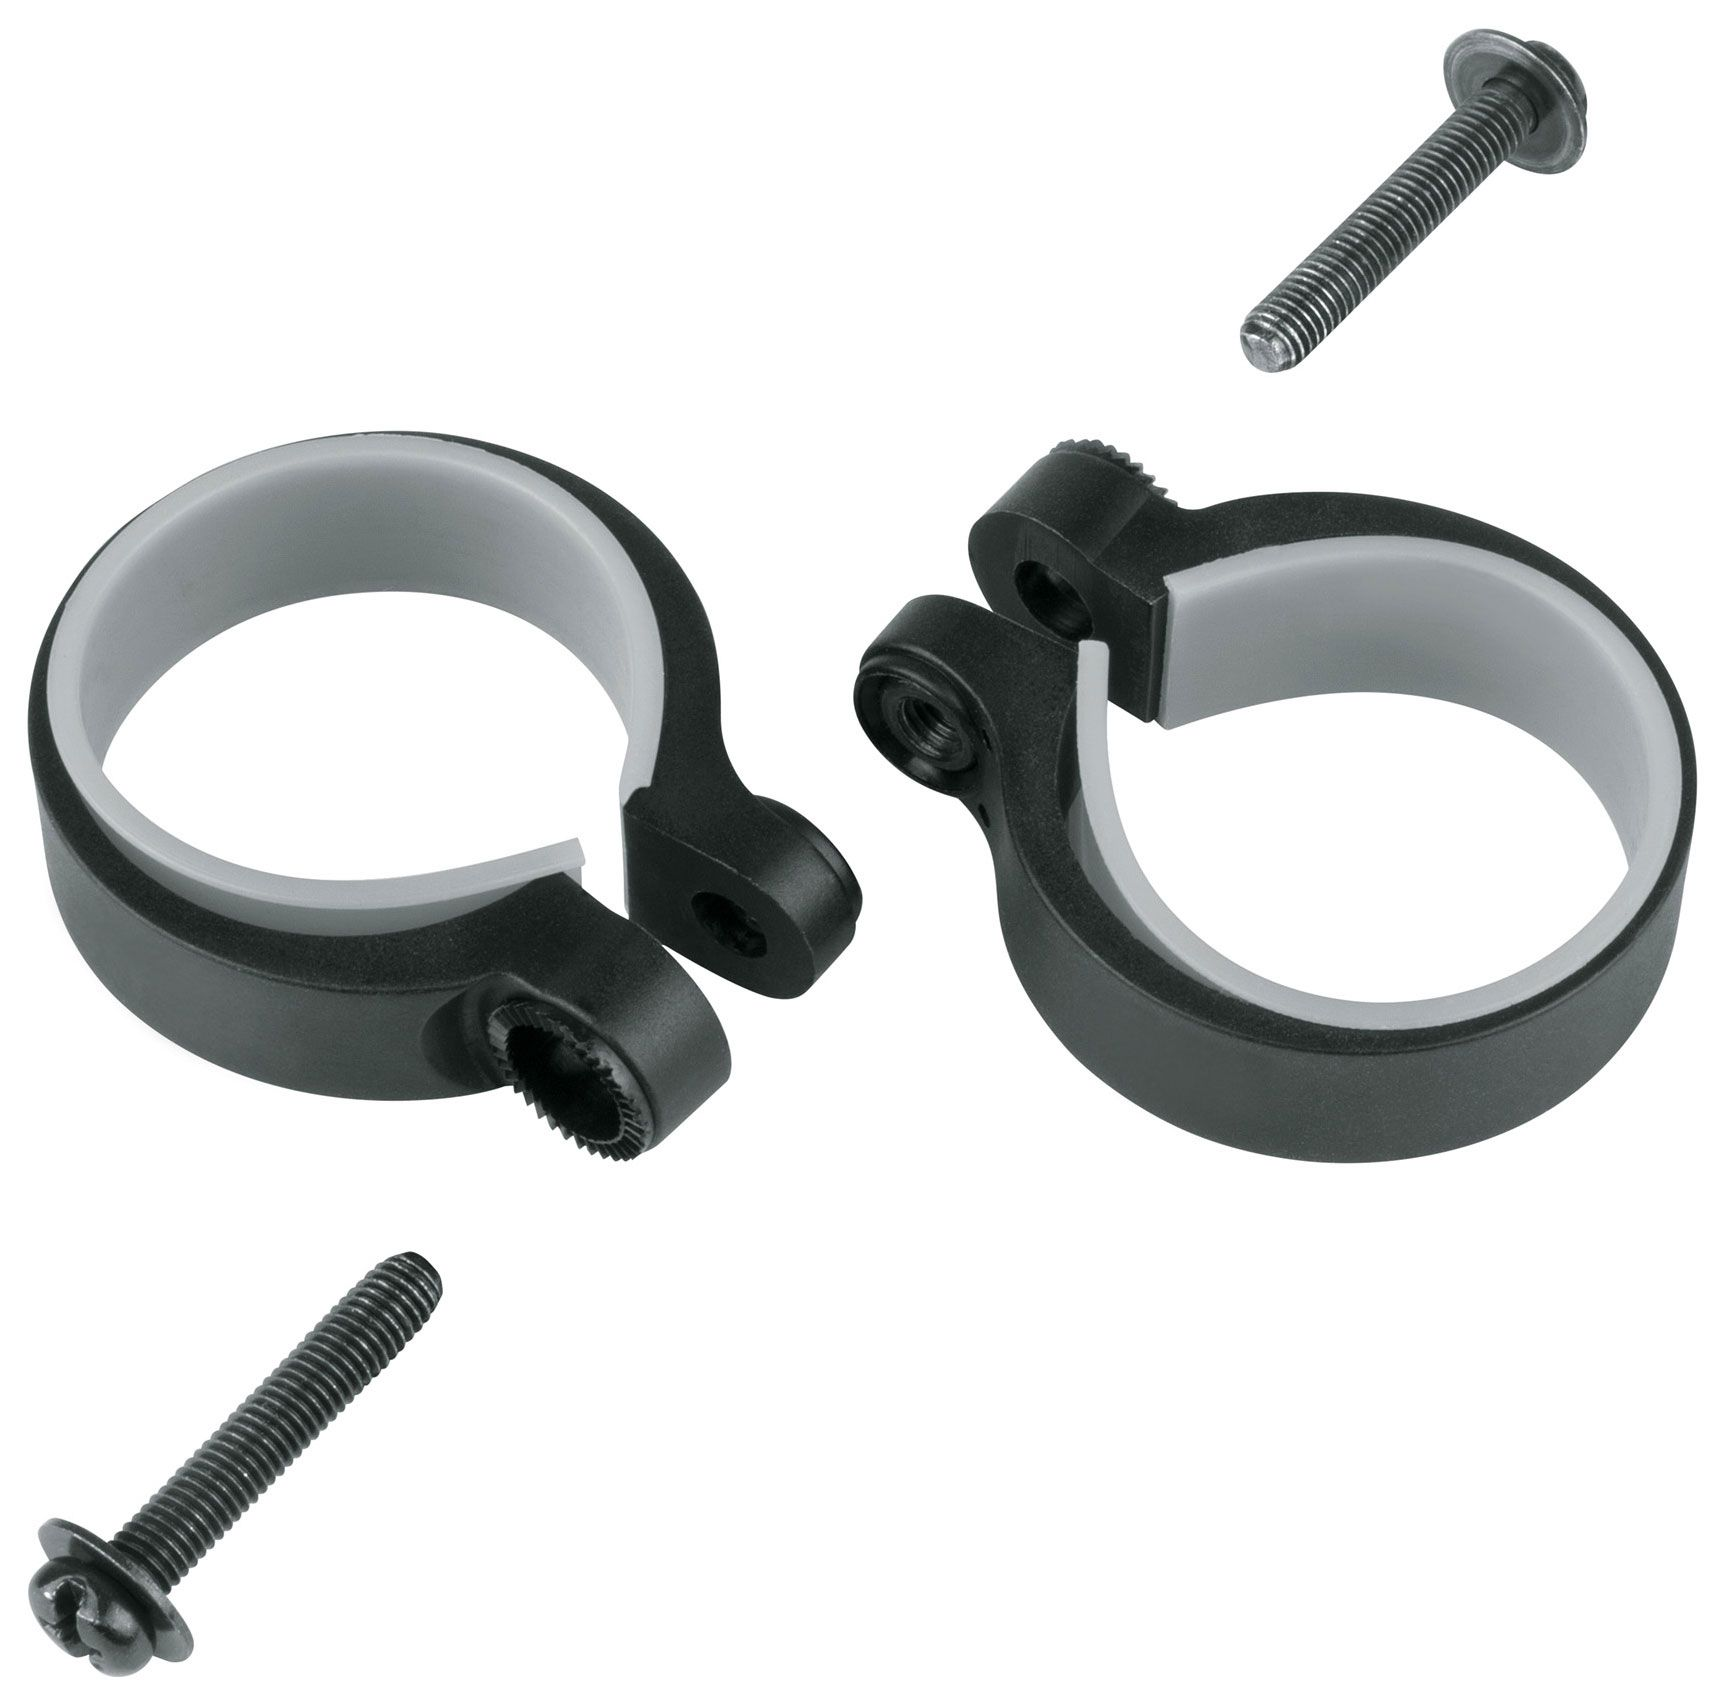 Запчасть SKS Stay Mounting Clamps 2 Pcs. 31,0 - 34,5Mm (SKS-11483) кабель vention аудио jack 6 5 mm m 3 5 m 2 м